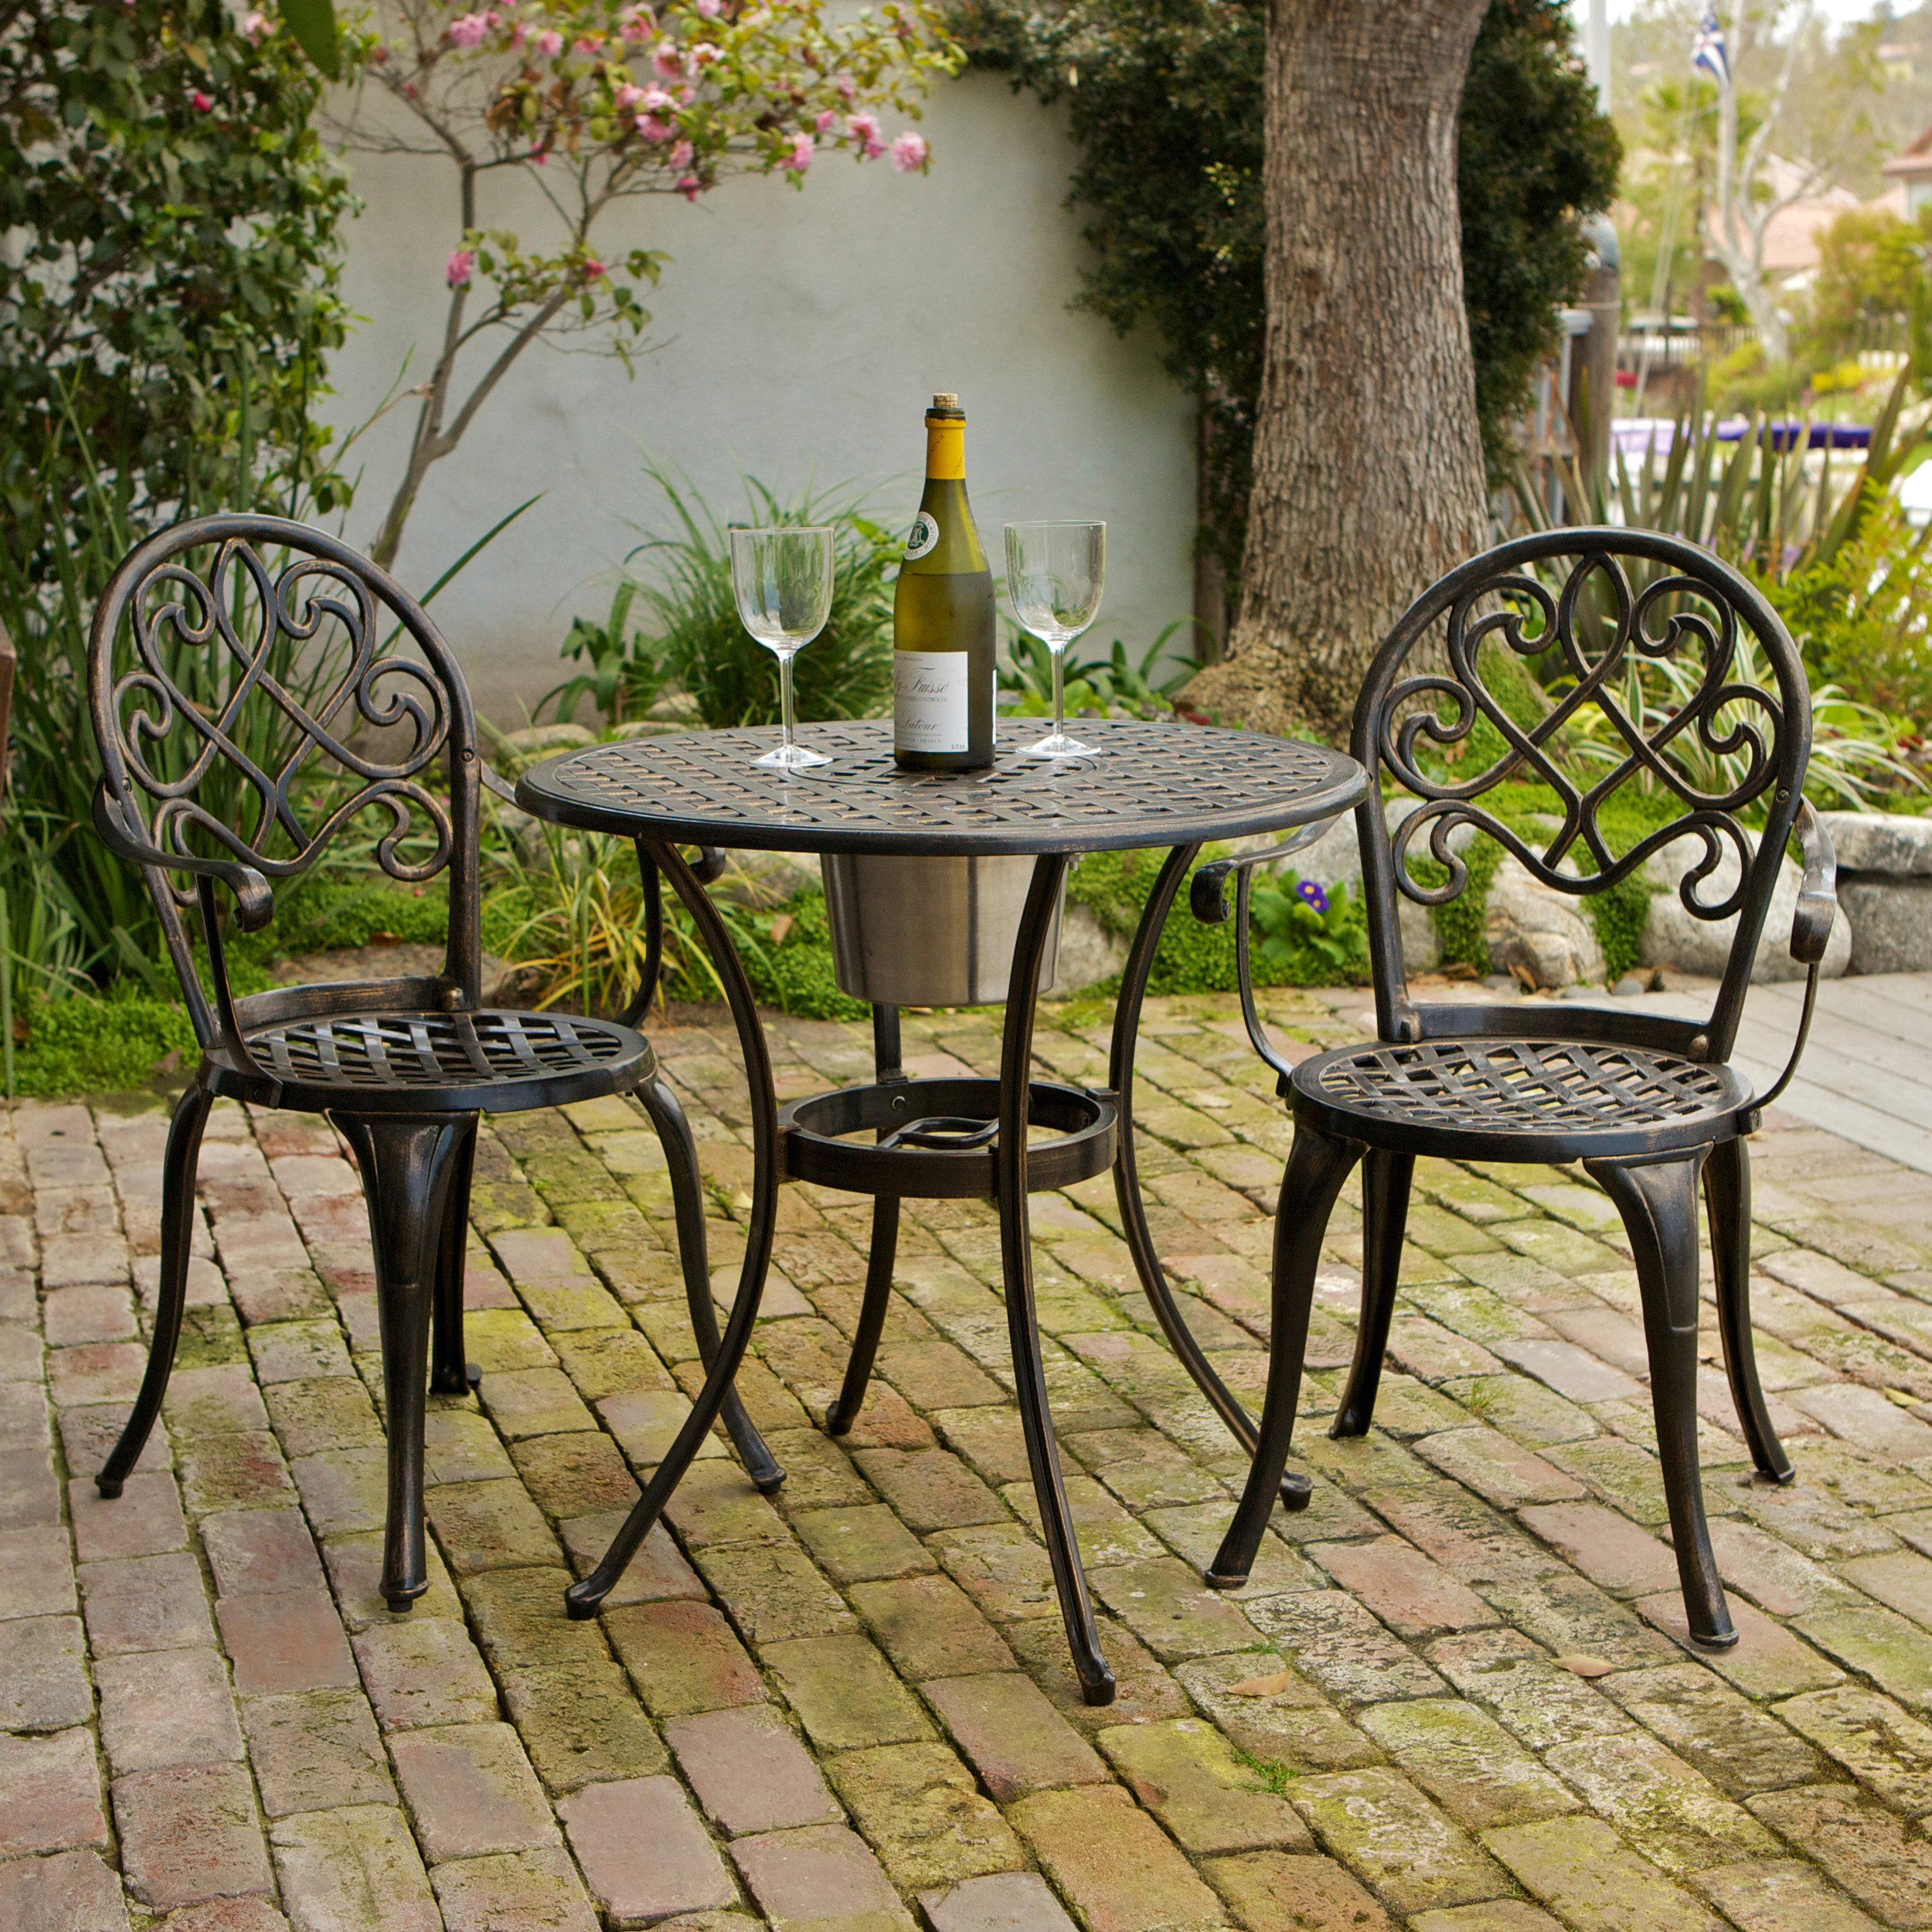 Christopher Knight Home 234795'' Angeles CKH Outdoor Metal Bistro Set, Copper